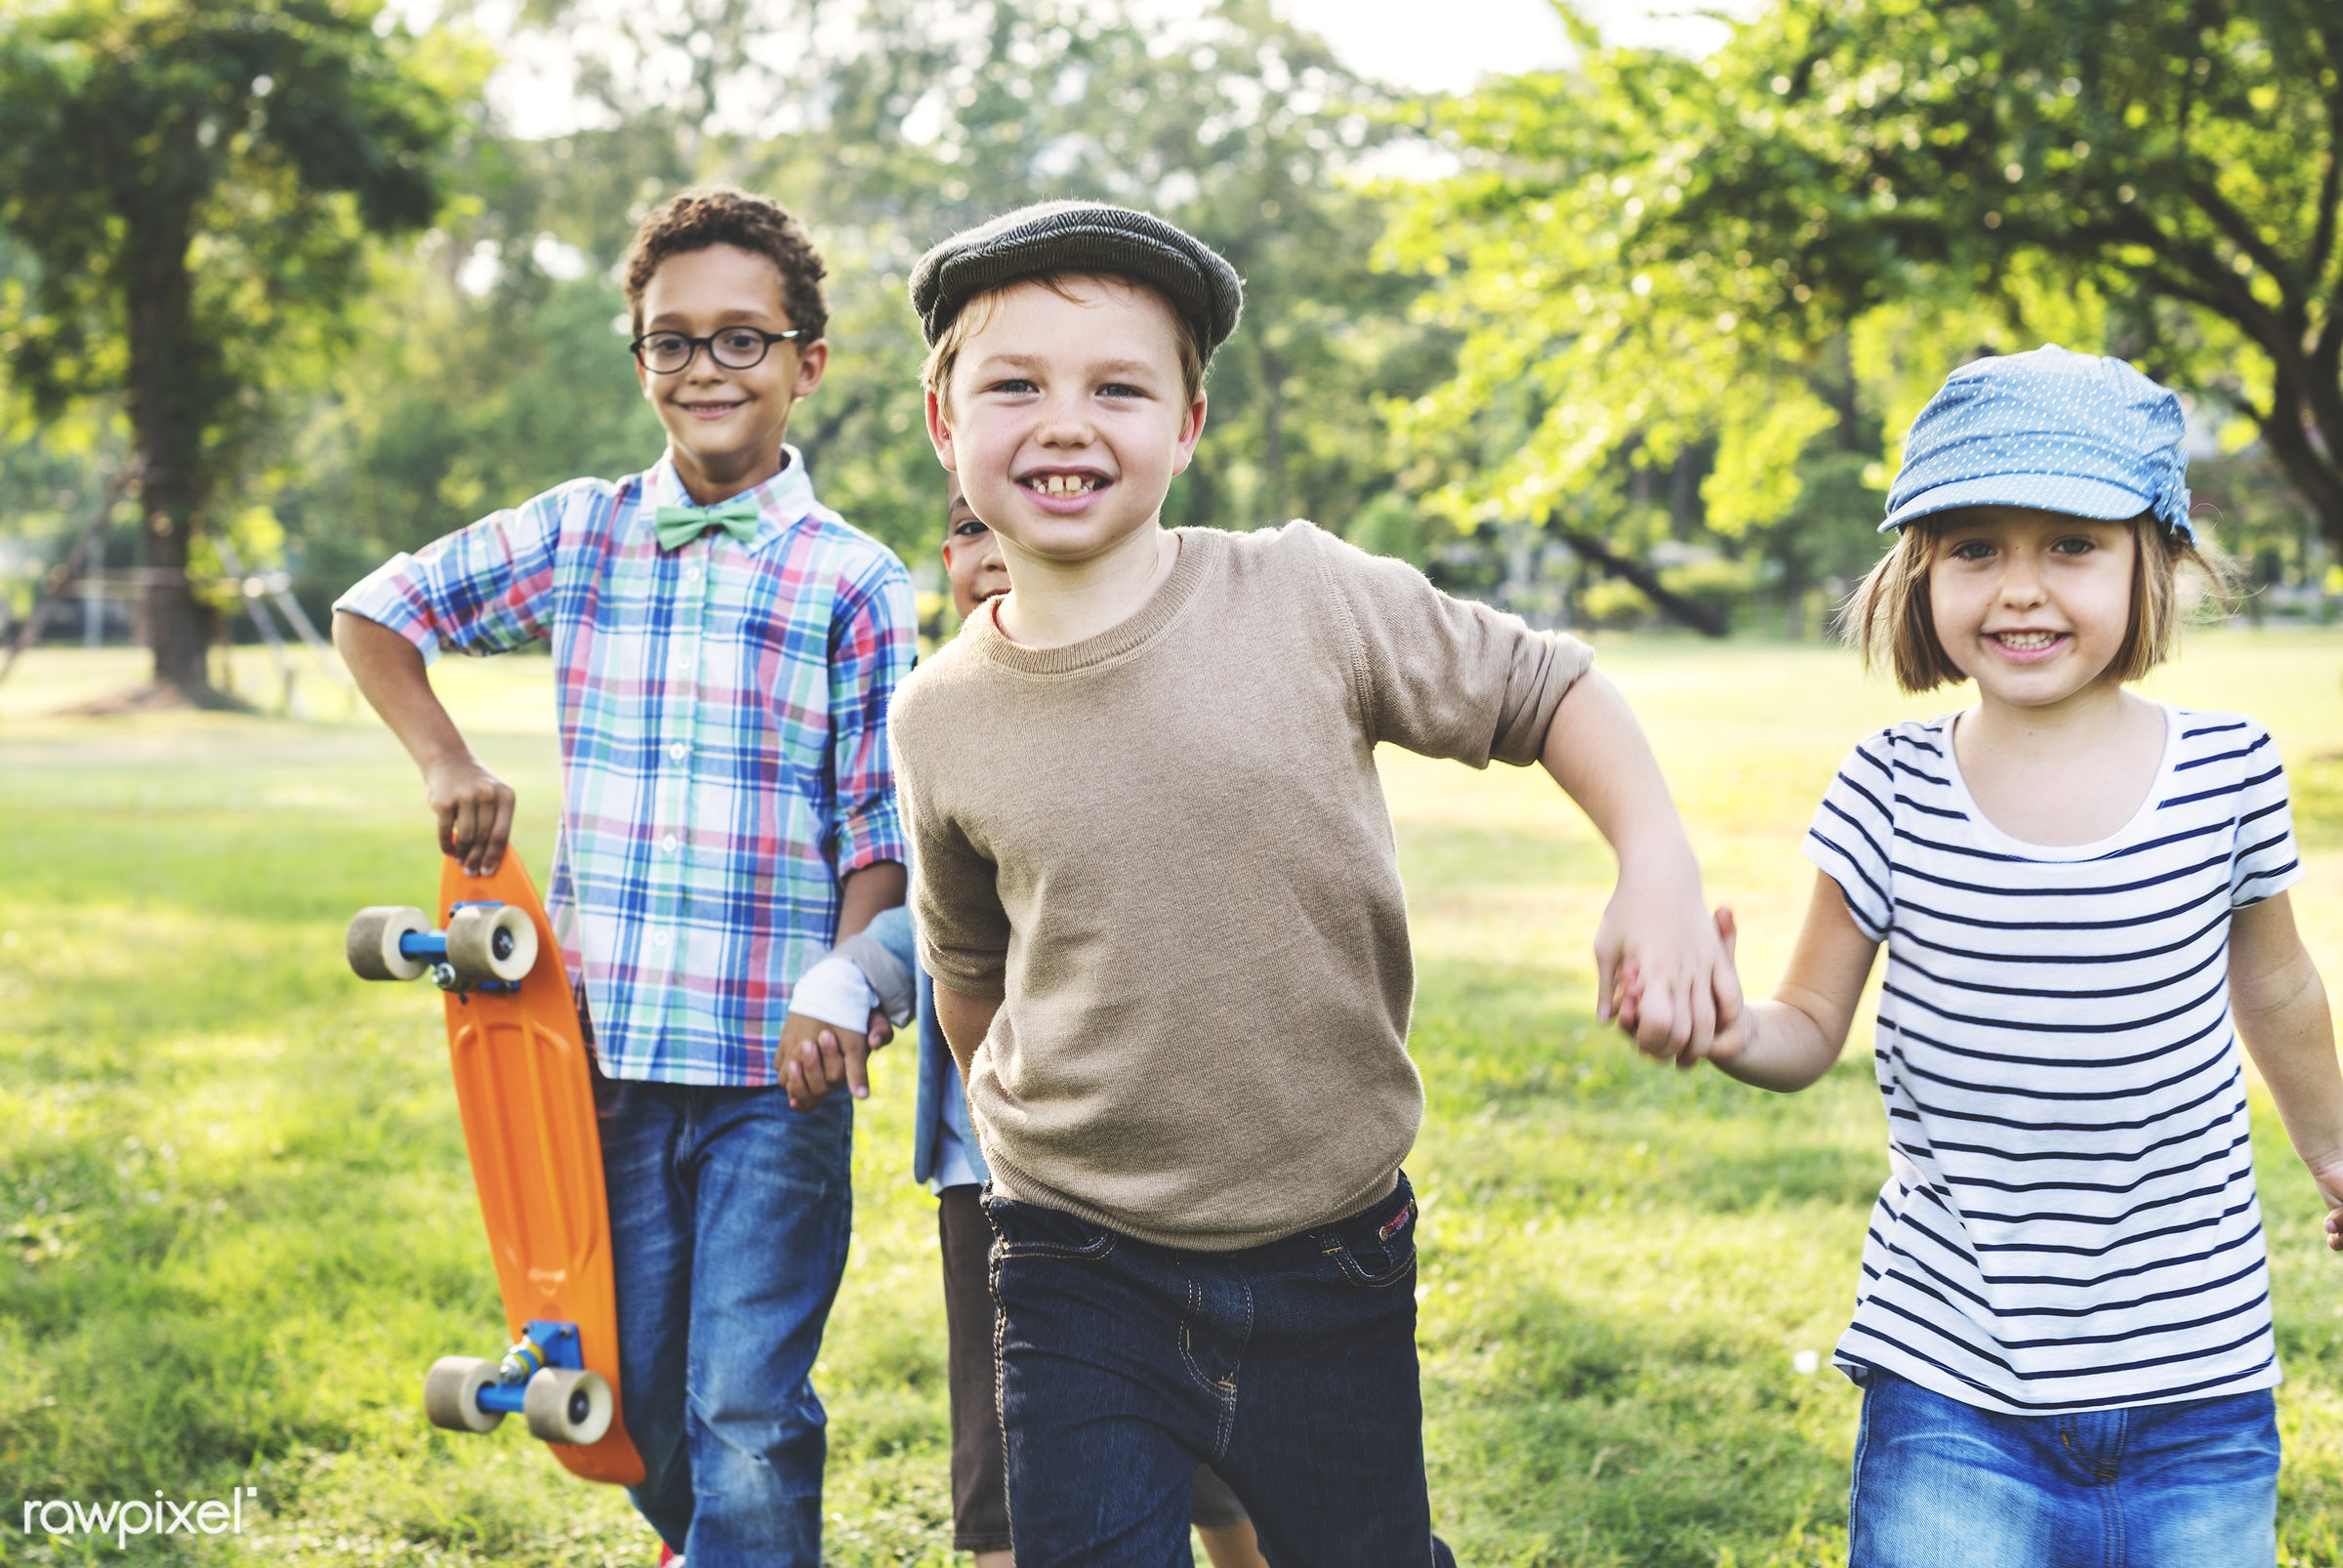 action, active, activity, adorable, boys, casual, cheerful, childhood, children, cute, diversity, elementary age, ethnicity...